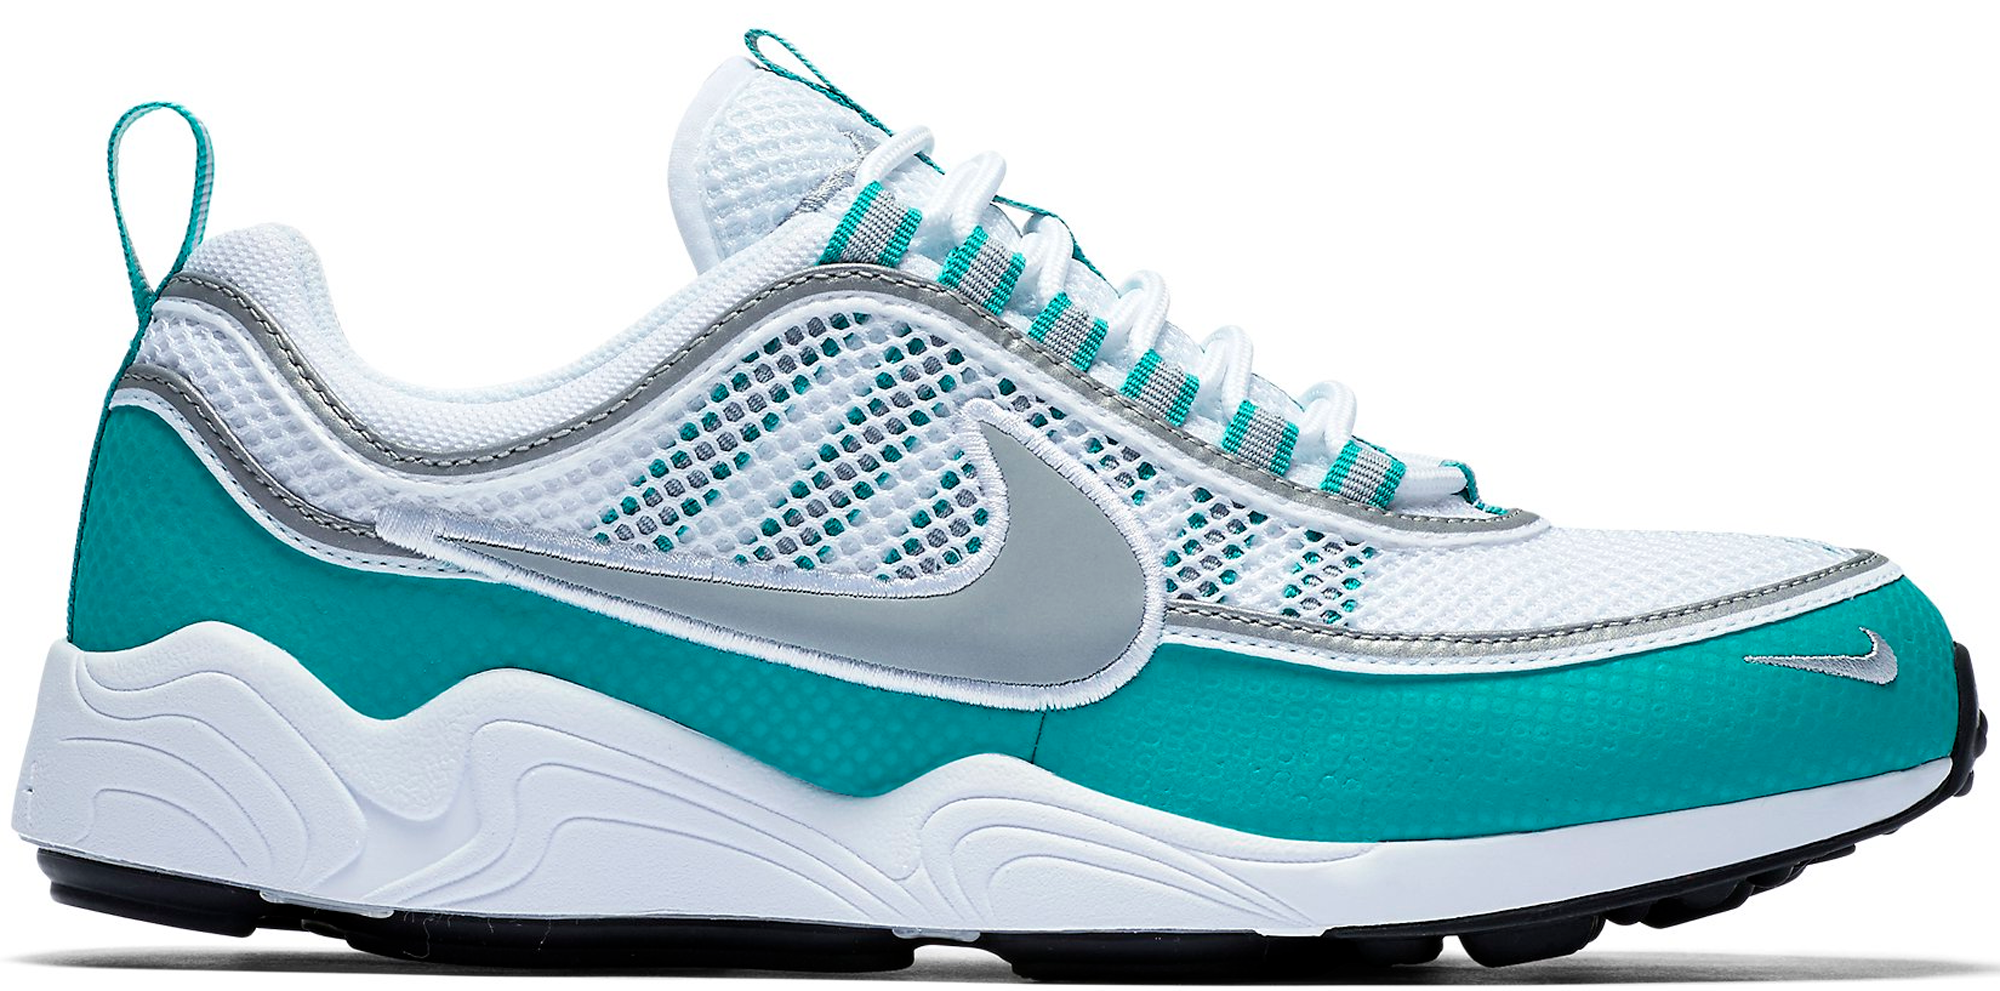 4c60ad38bc2e Nike Air Zoom Spiridon White Turbo Green - StockX News